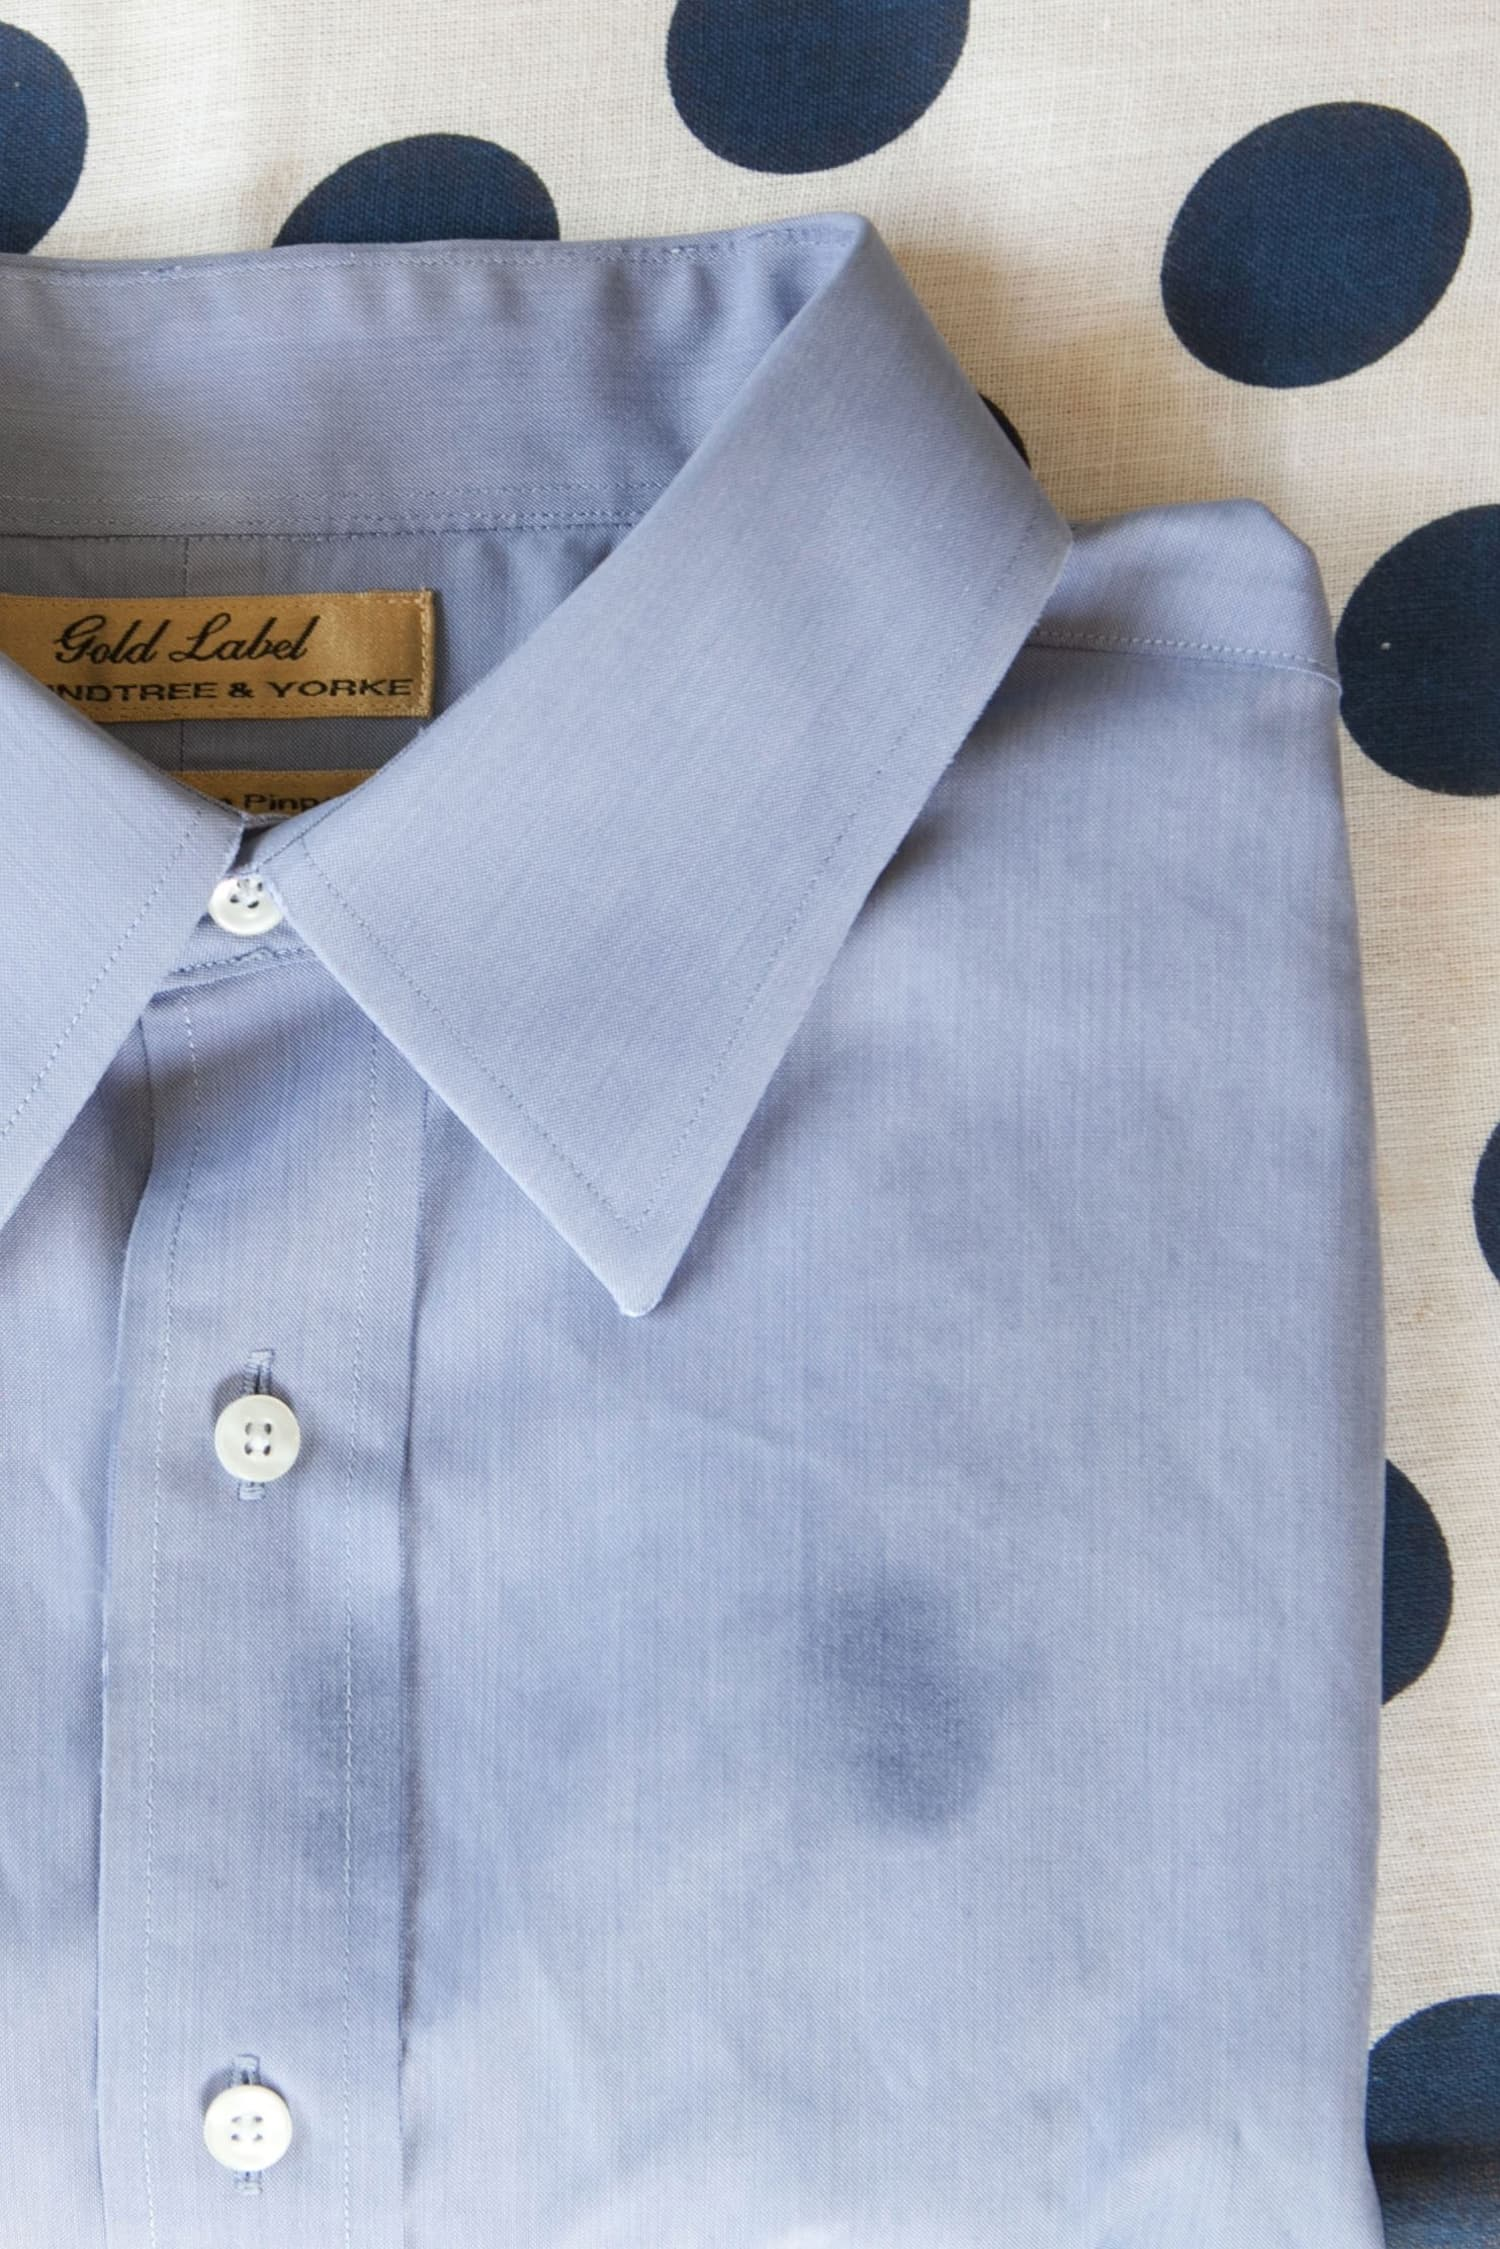 The Best Way to Get Grease Stains Out of Clothes